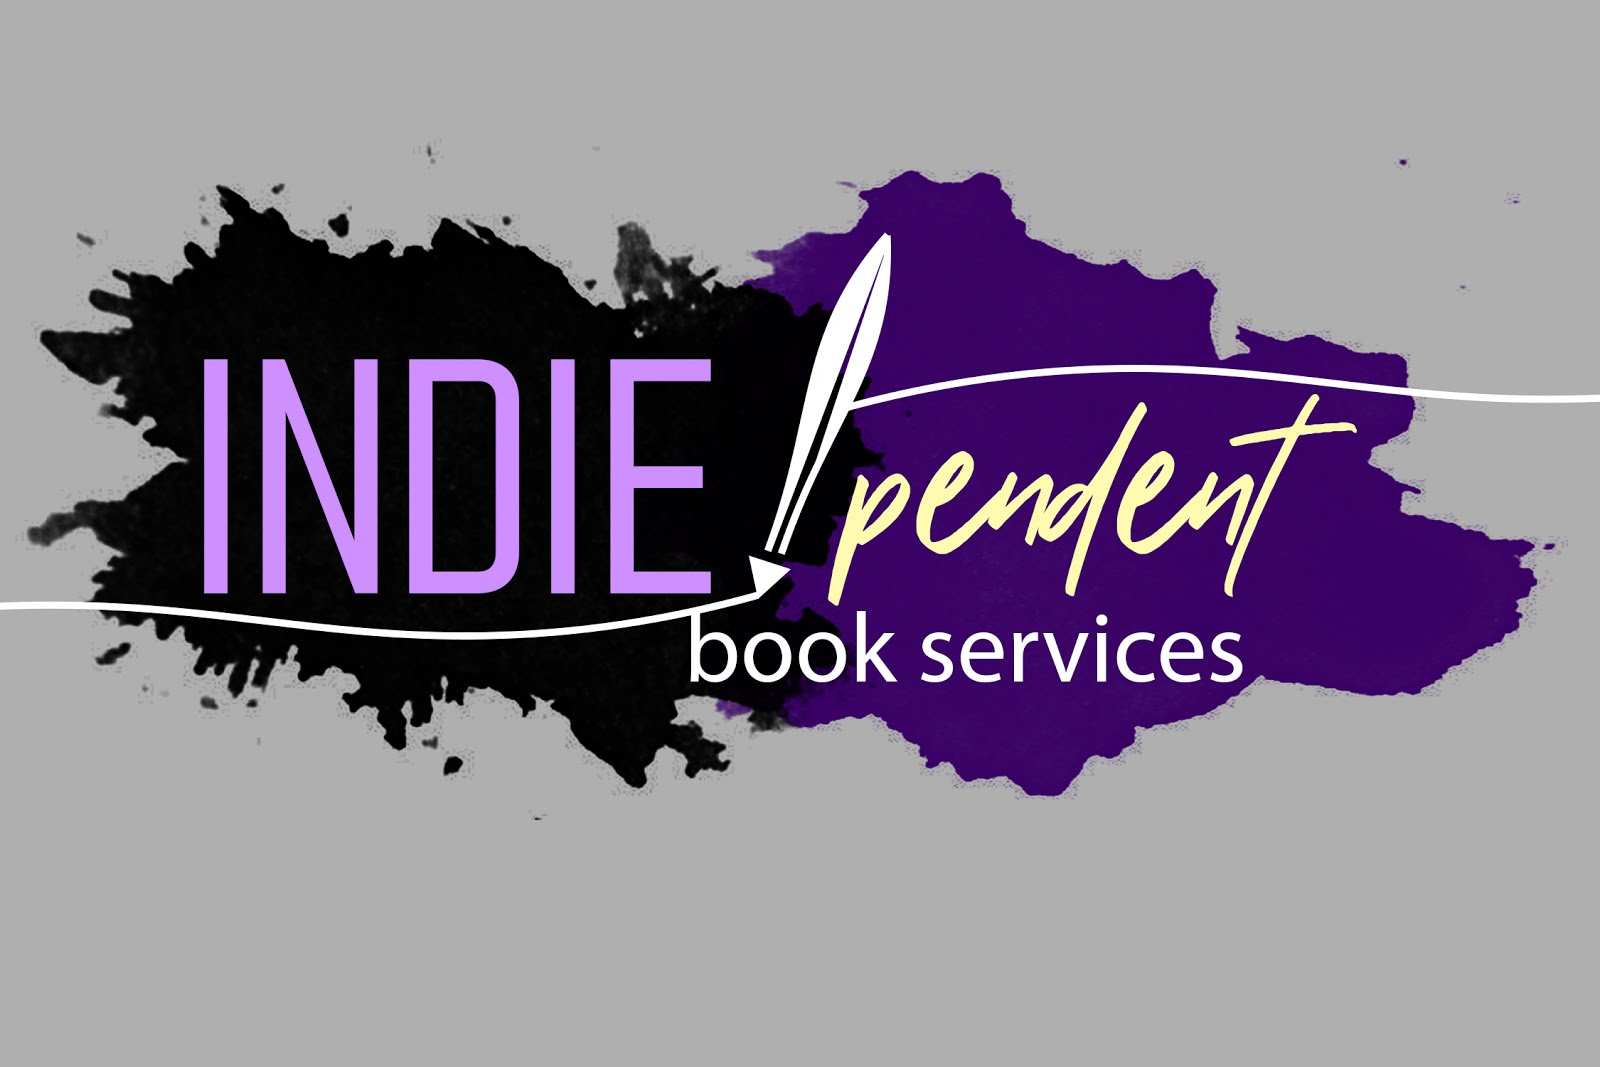 INDIE/pendent Book Services